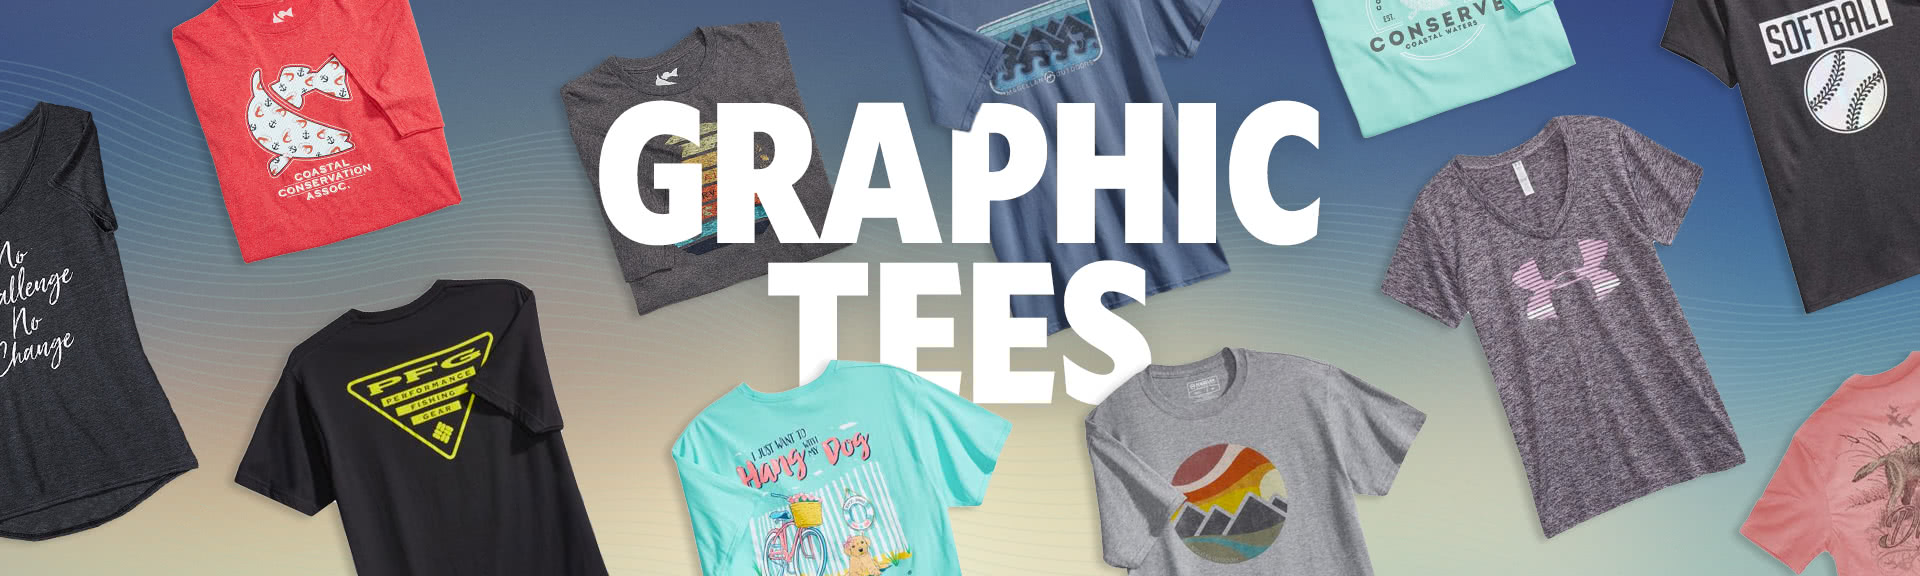 Graphic Tee Shirts Page